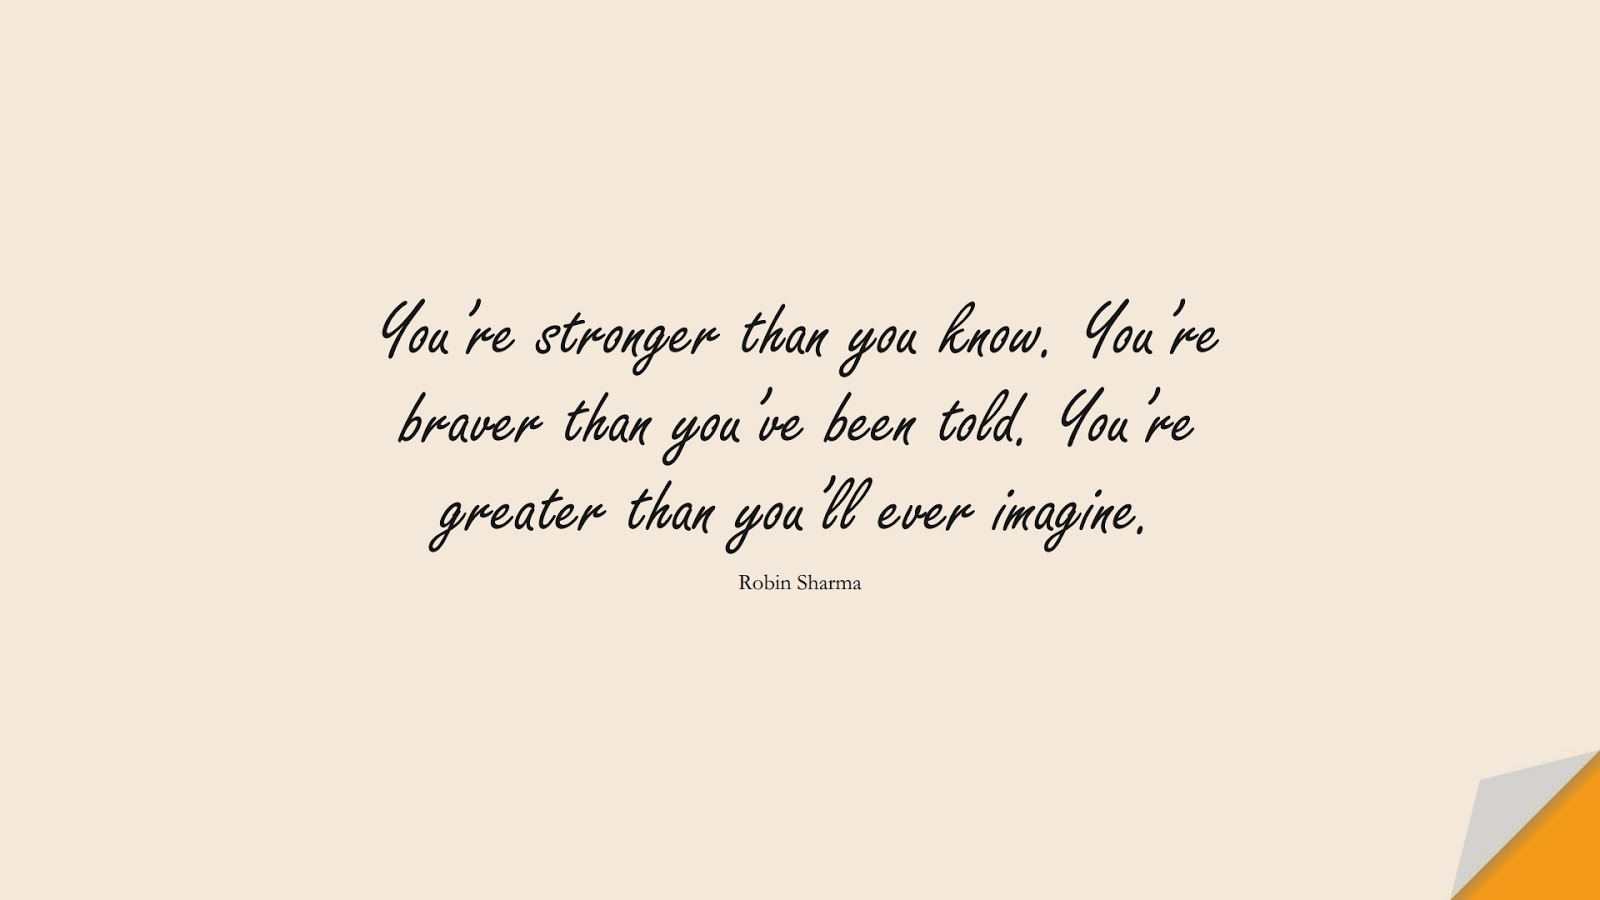 You're stronger than you know. You're braver than you've been told. You're greater than you'll ever imagine. (Robin Sharma);  #PositiveQuotes